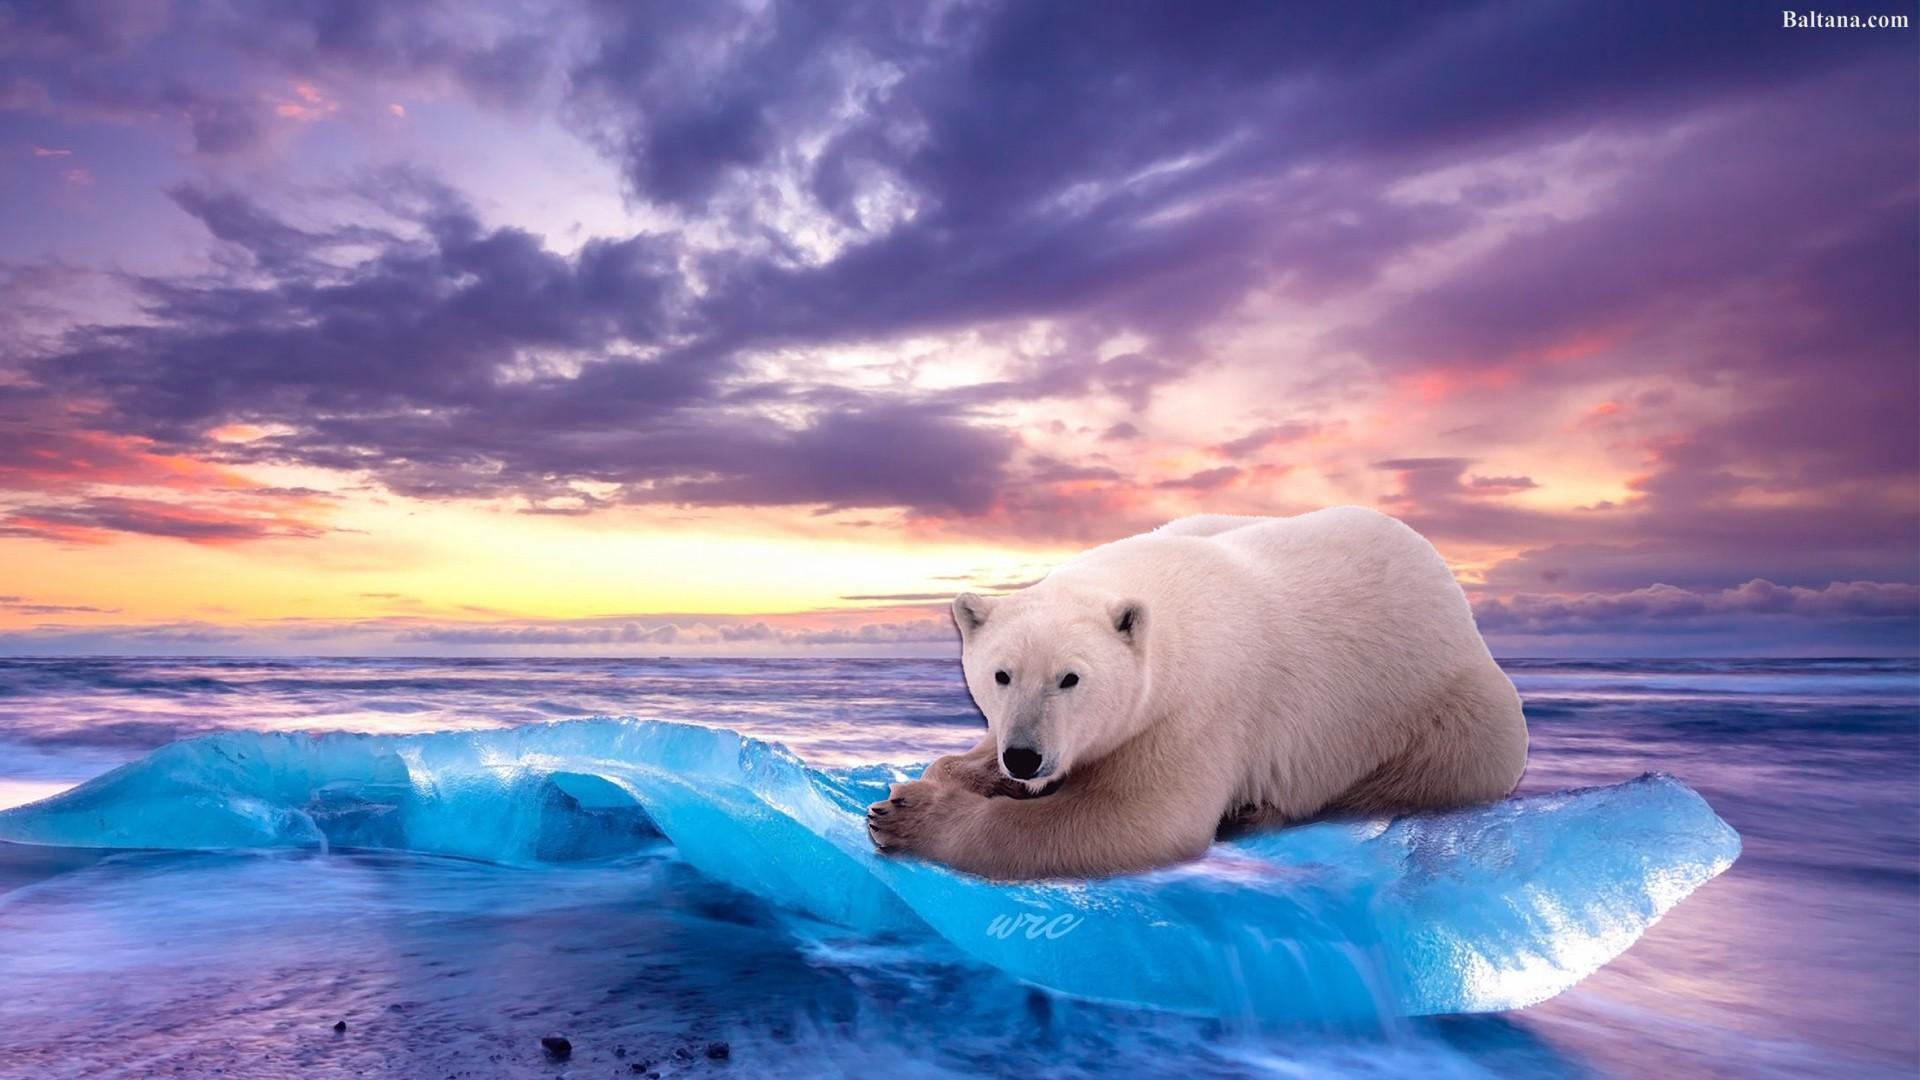 Ice Bear Wallpapers - Wallpaper Cave